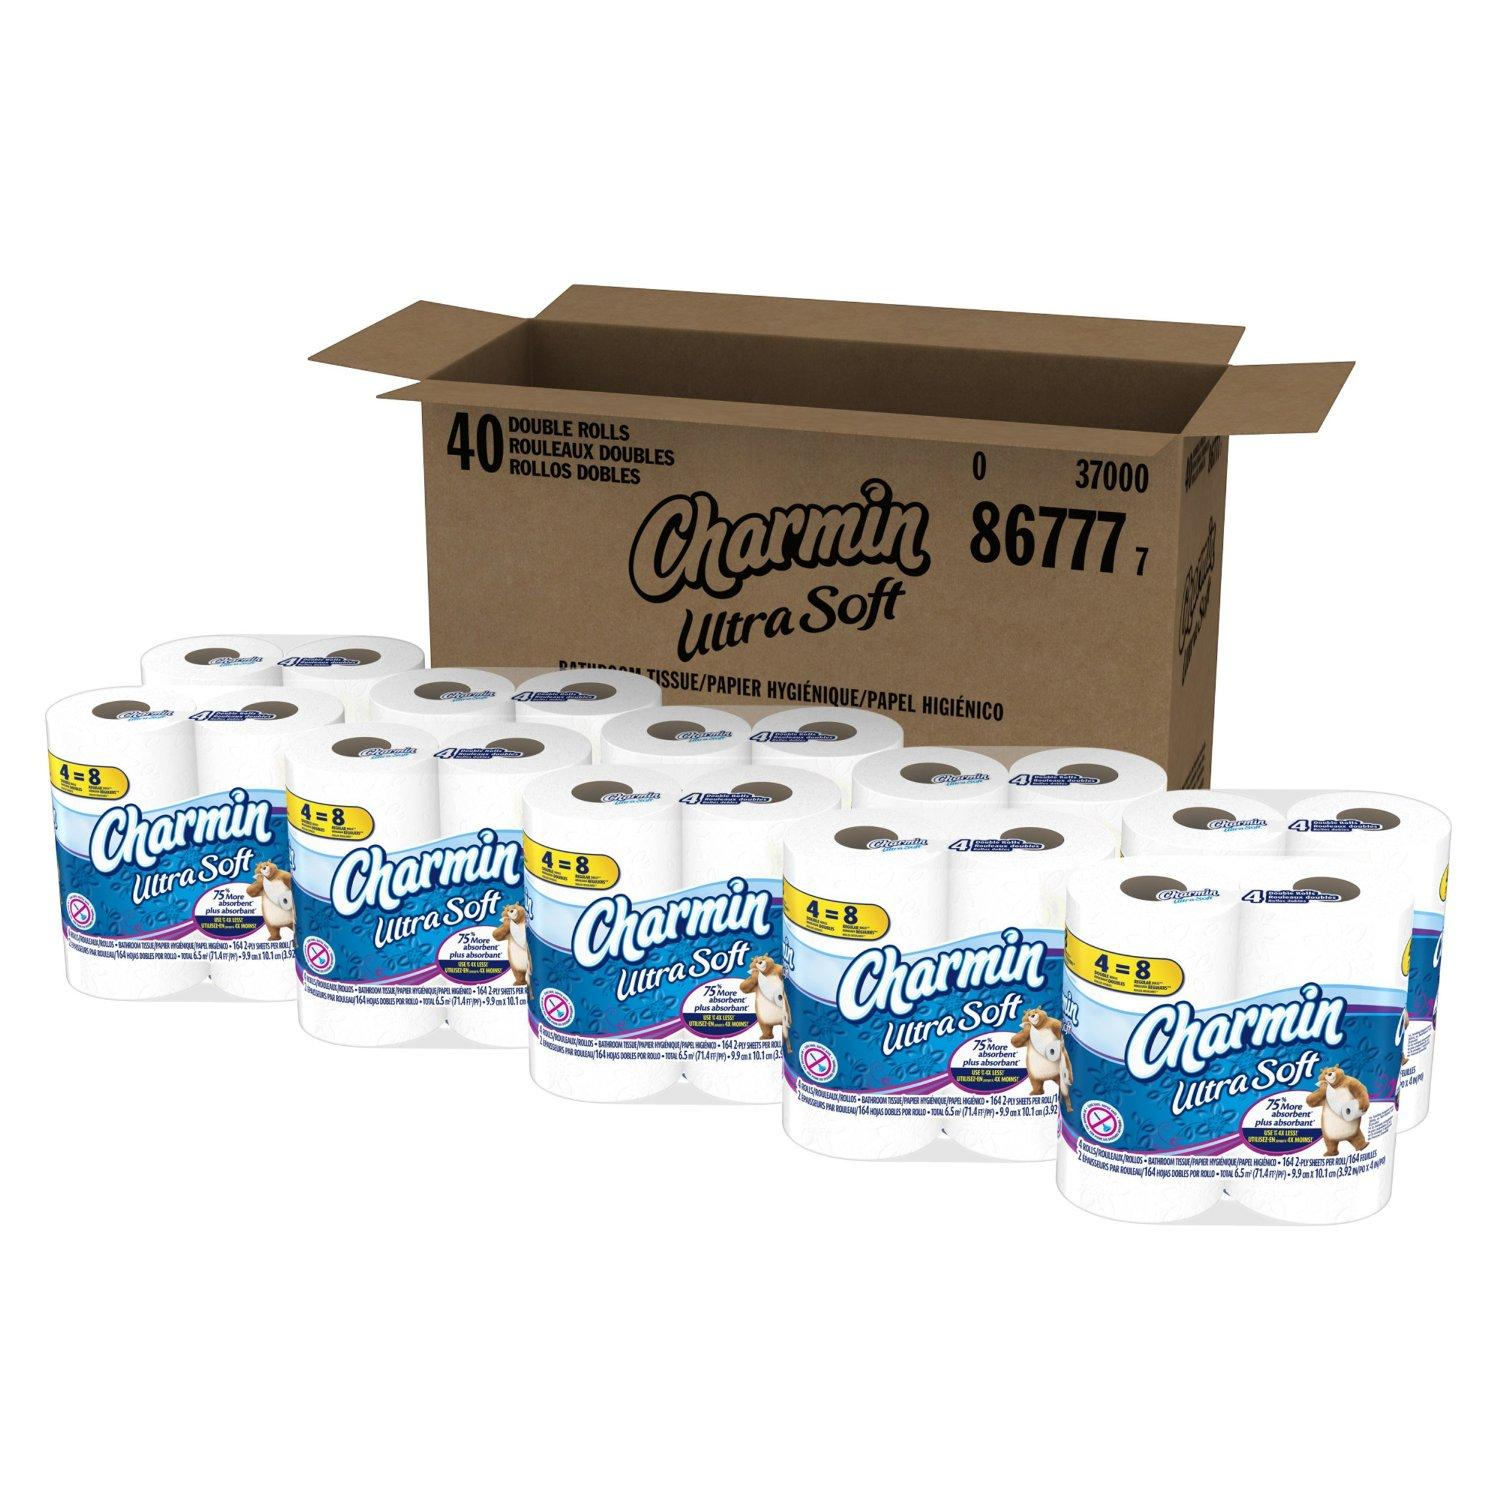 $18.87 Charmin Ultra Soft Toilet Paper (10 Packs Of 4 Double Rolls)